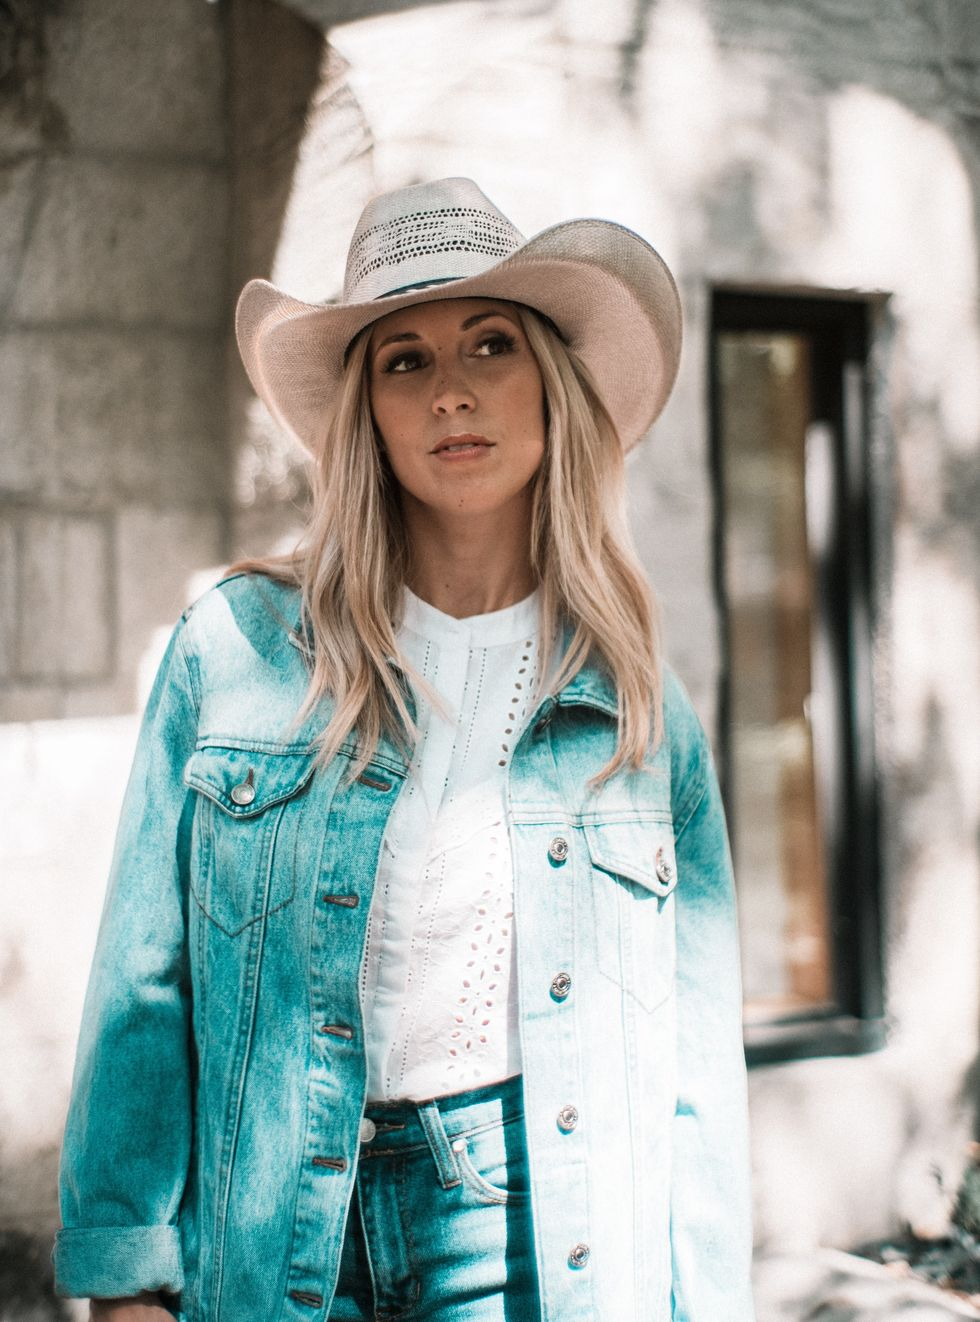 11 Songs To Add To Your 'Heart Of Country' Playlist ASAP, Because 2020 Could Use Some Country